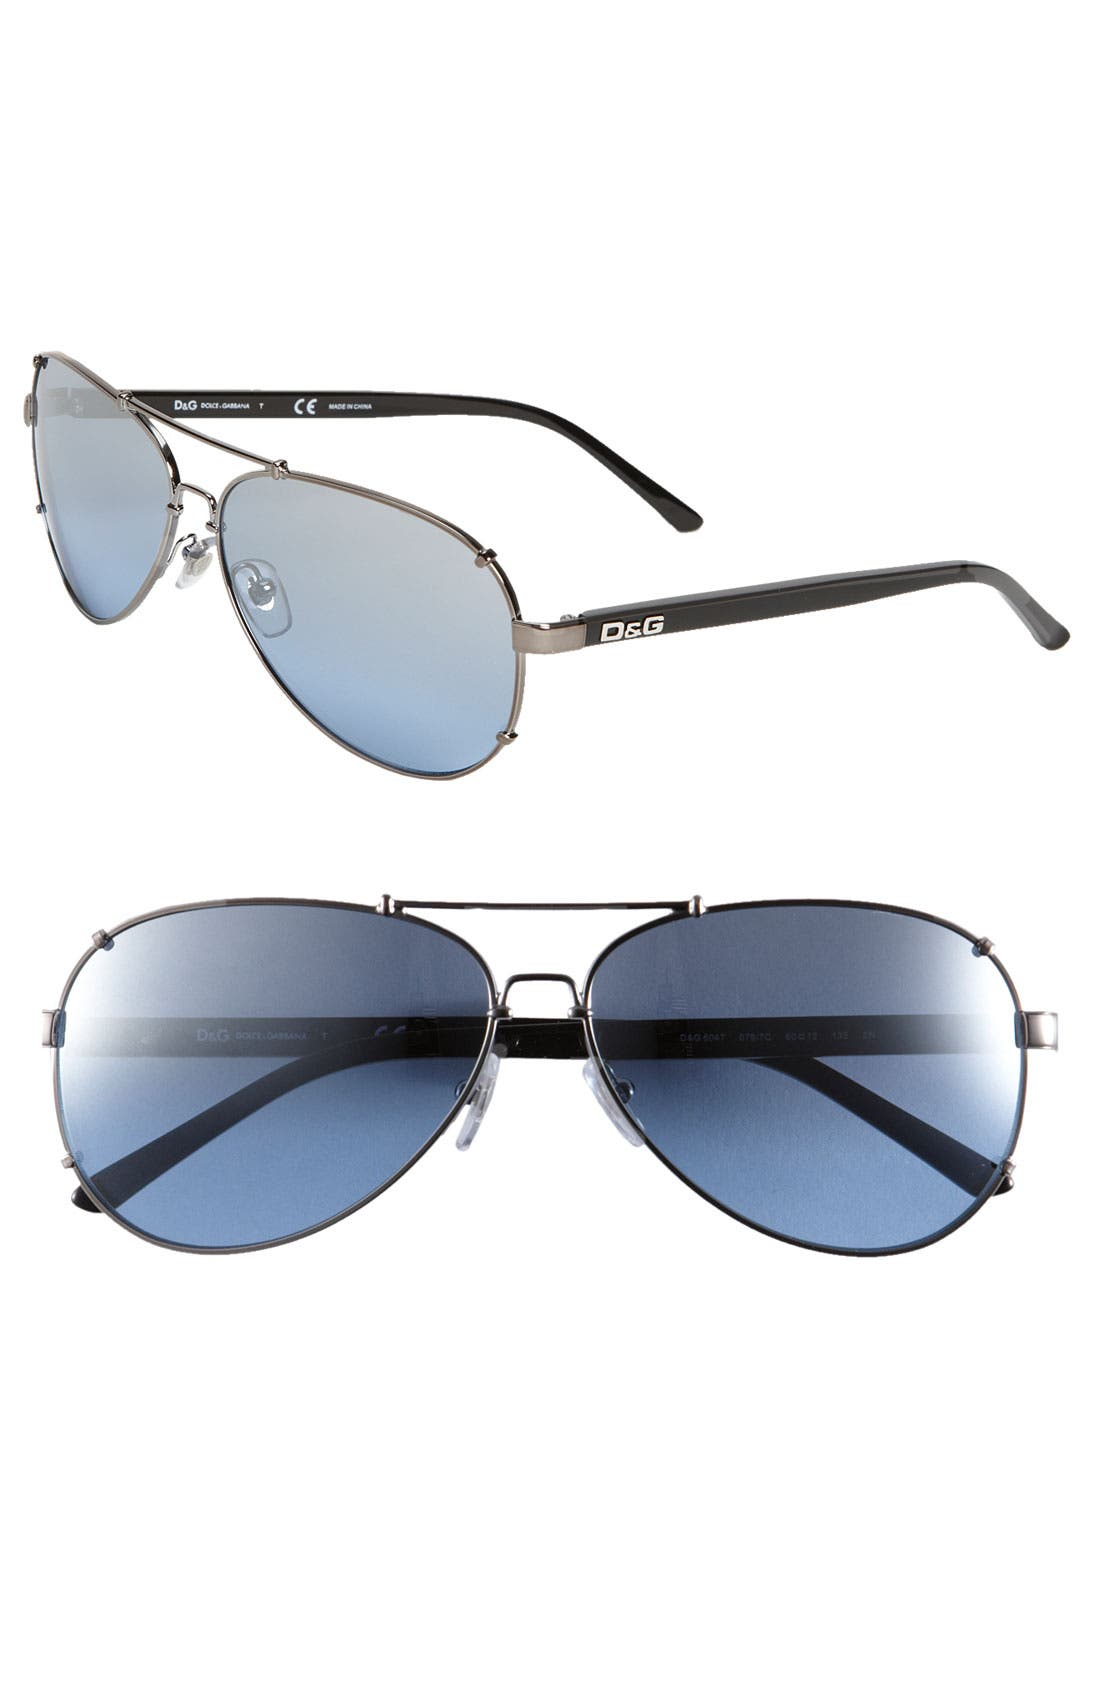 Alternate Image 1 Selected - D&G Metal Aviator Sunglasses